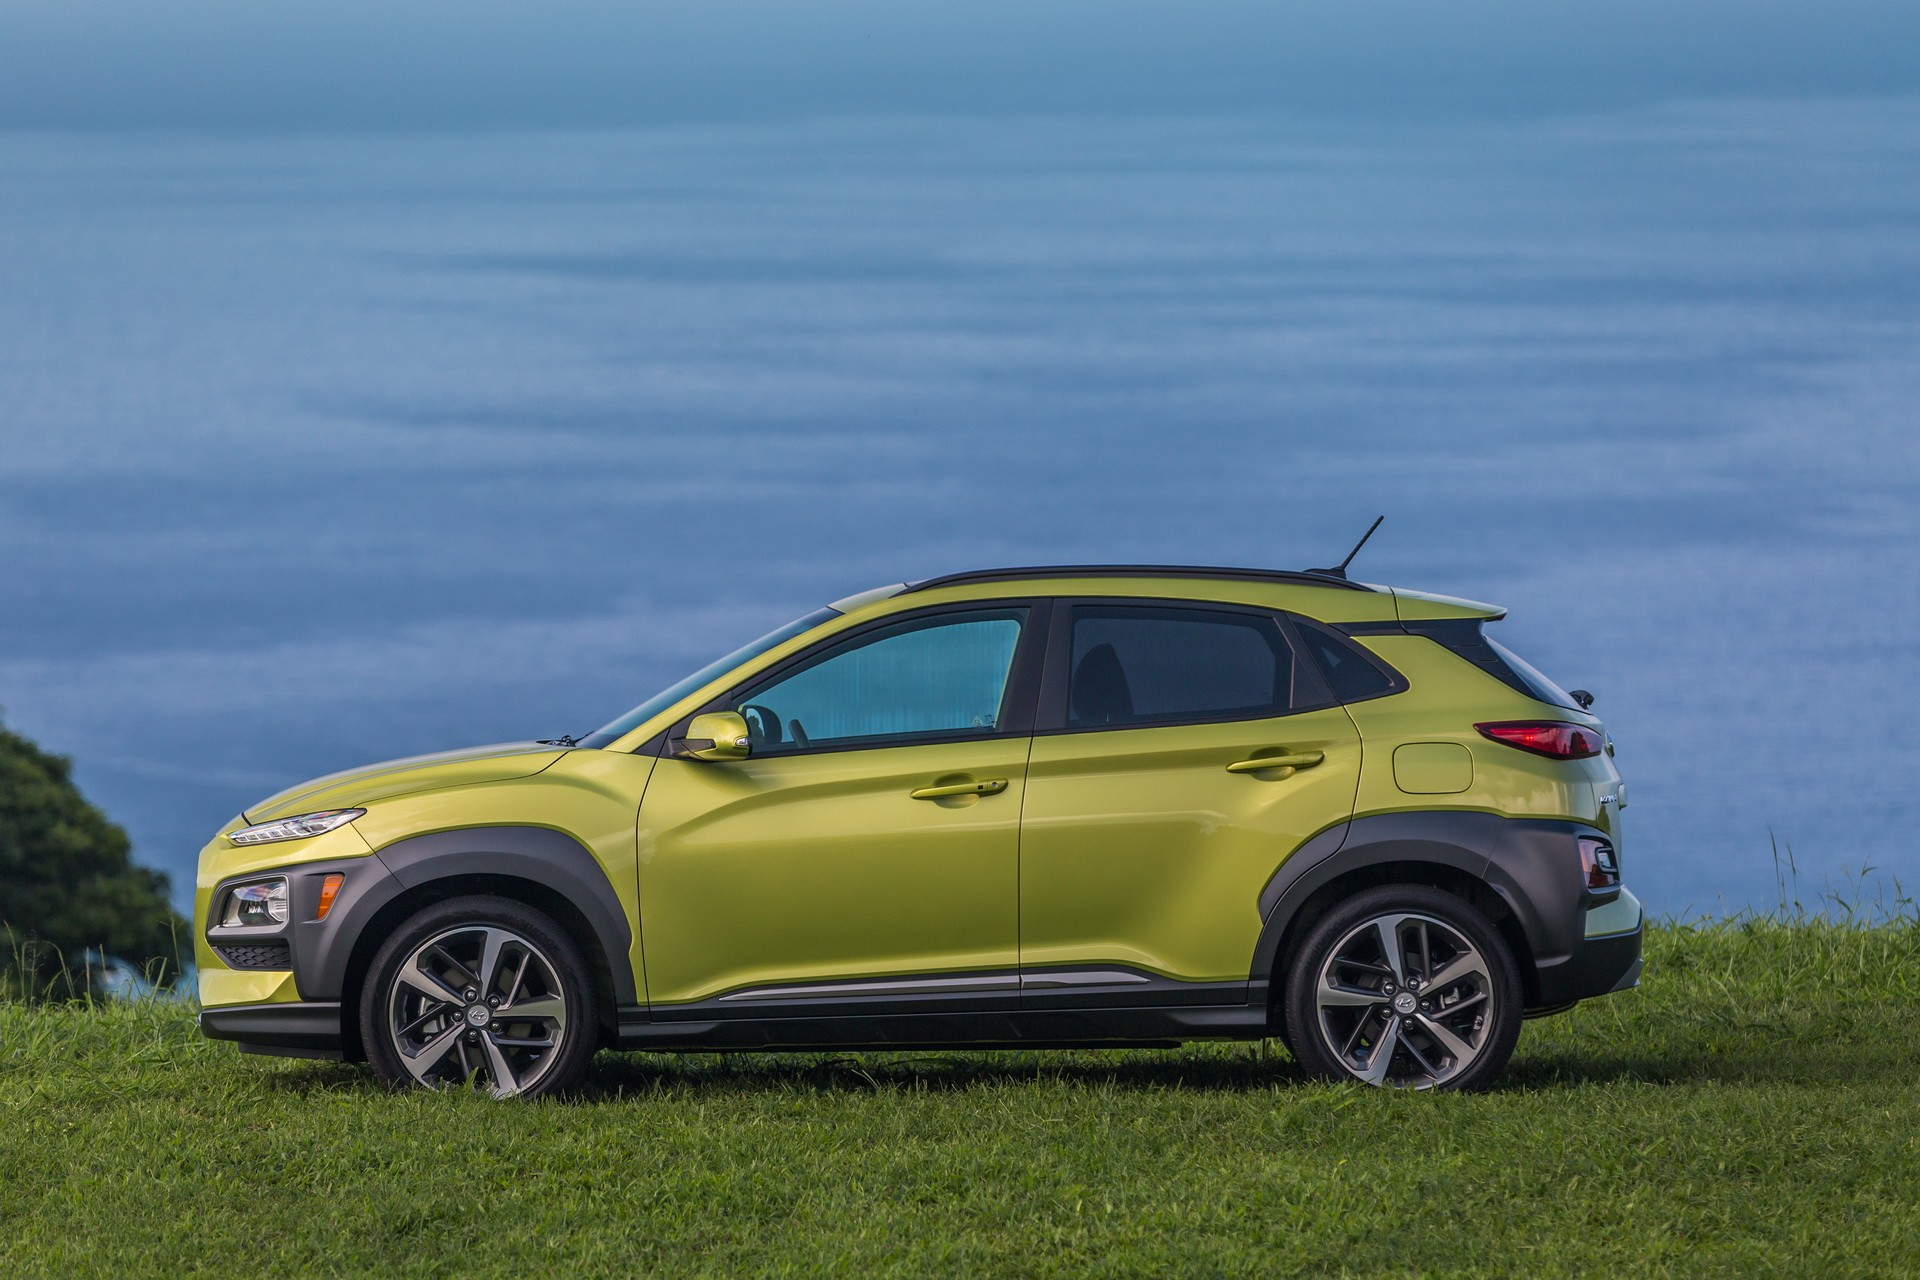 2018 Hyundai Kona U S Pricing Announced Sounds Like A